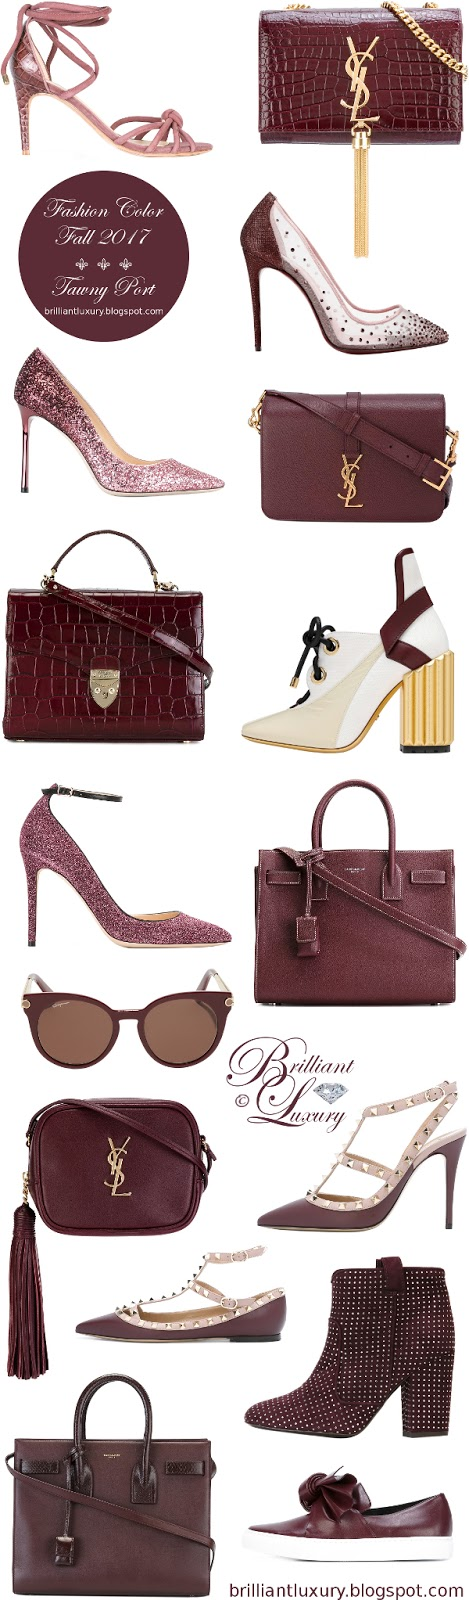 Brilliant Luxury ♦ Fashion Color Fall 2017 ~ Tawny Port